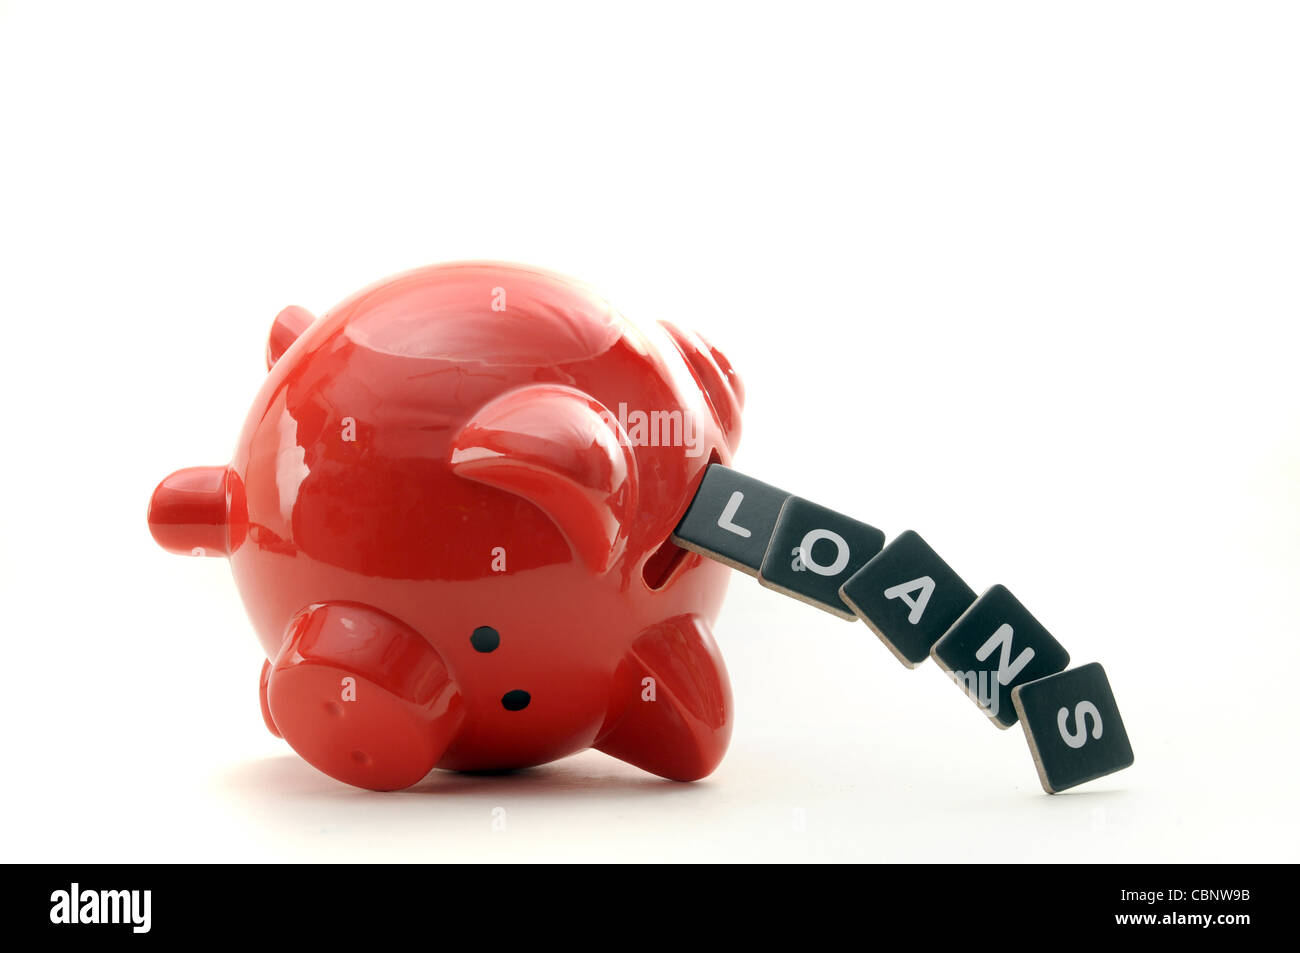 OVERTURNED RED PIGGYBANK WITH LETTERS SPELLING  LOANS RE THE ECONOMY CREDIT CRUNCH SAVINGS LOANS DEBT FINANCIAL - Stock Image